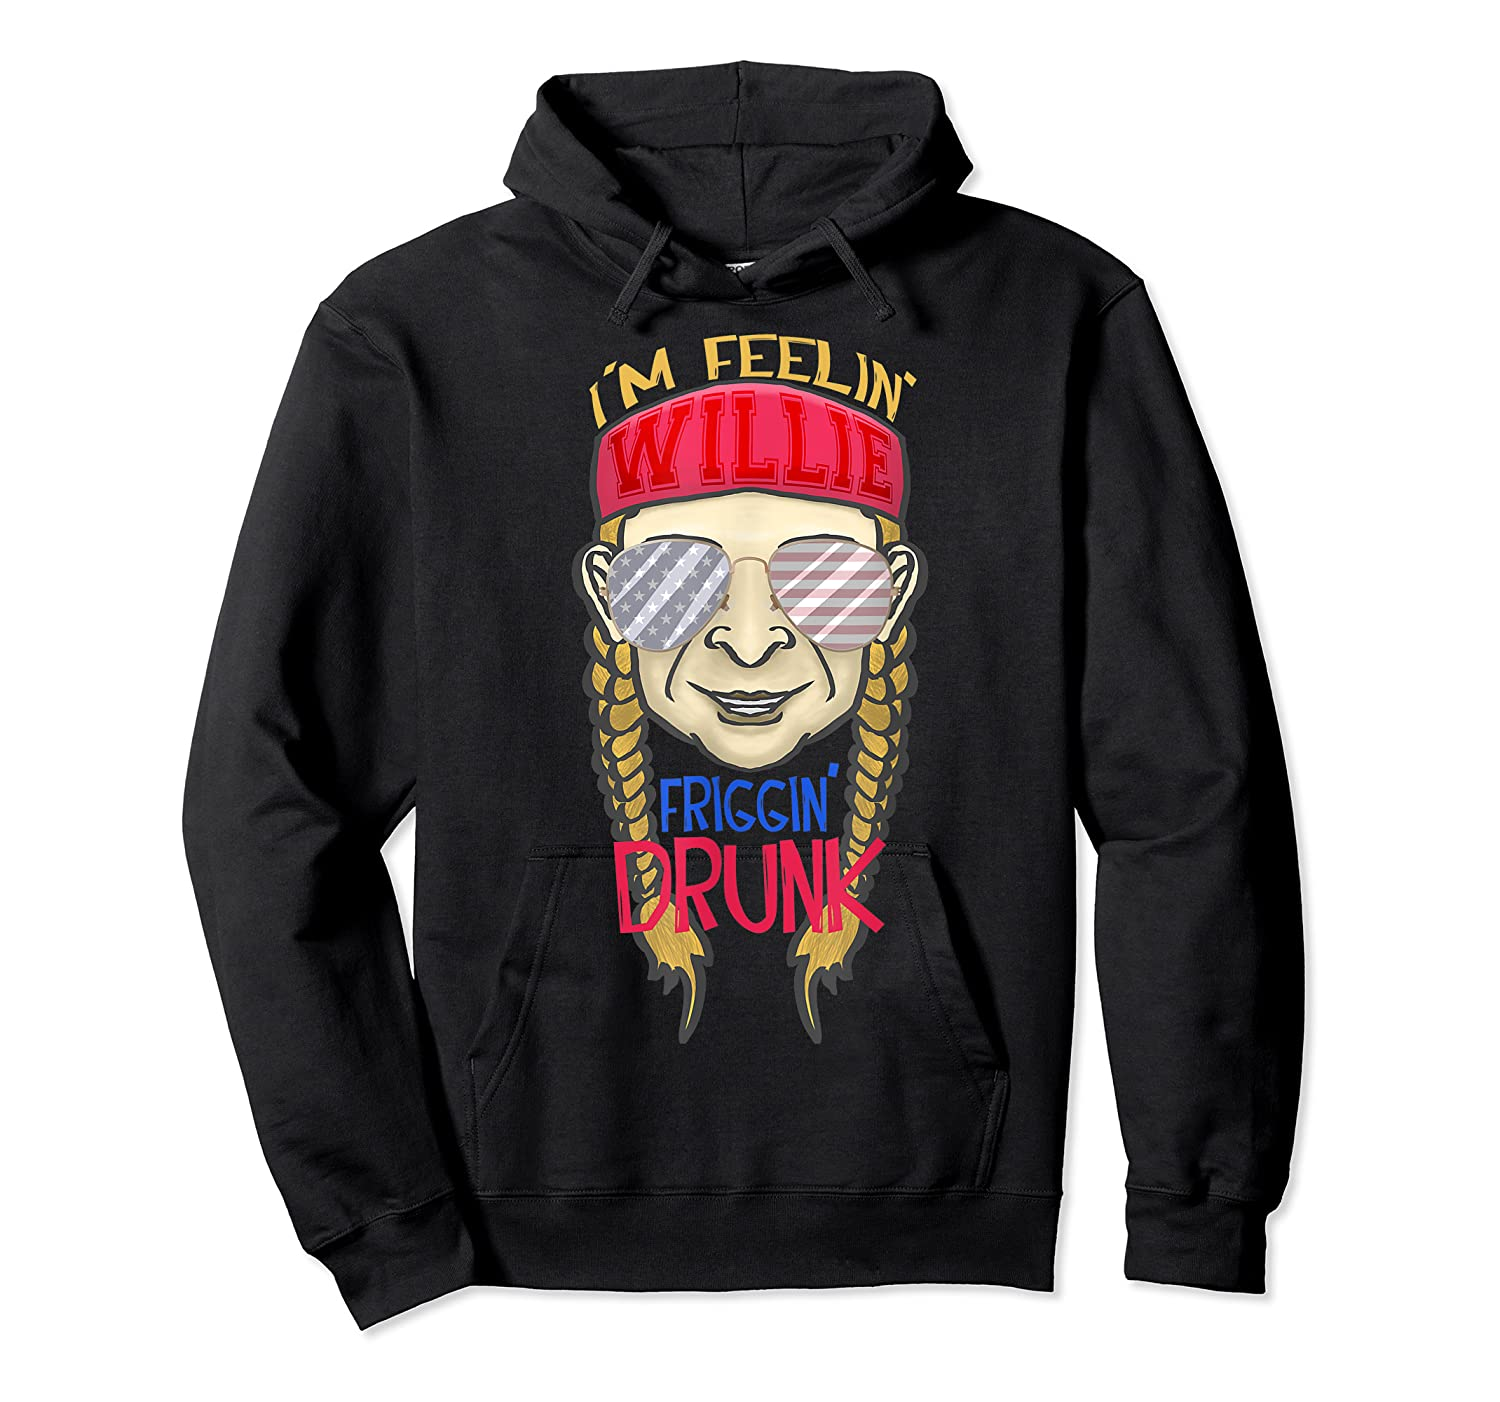 I'm Feeling Willie Friggin Drunk Flag July 4th Funny Shirts Unisex Pullover Hoodie